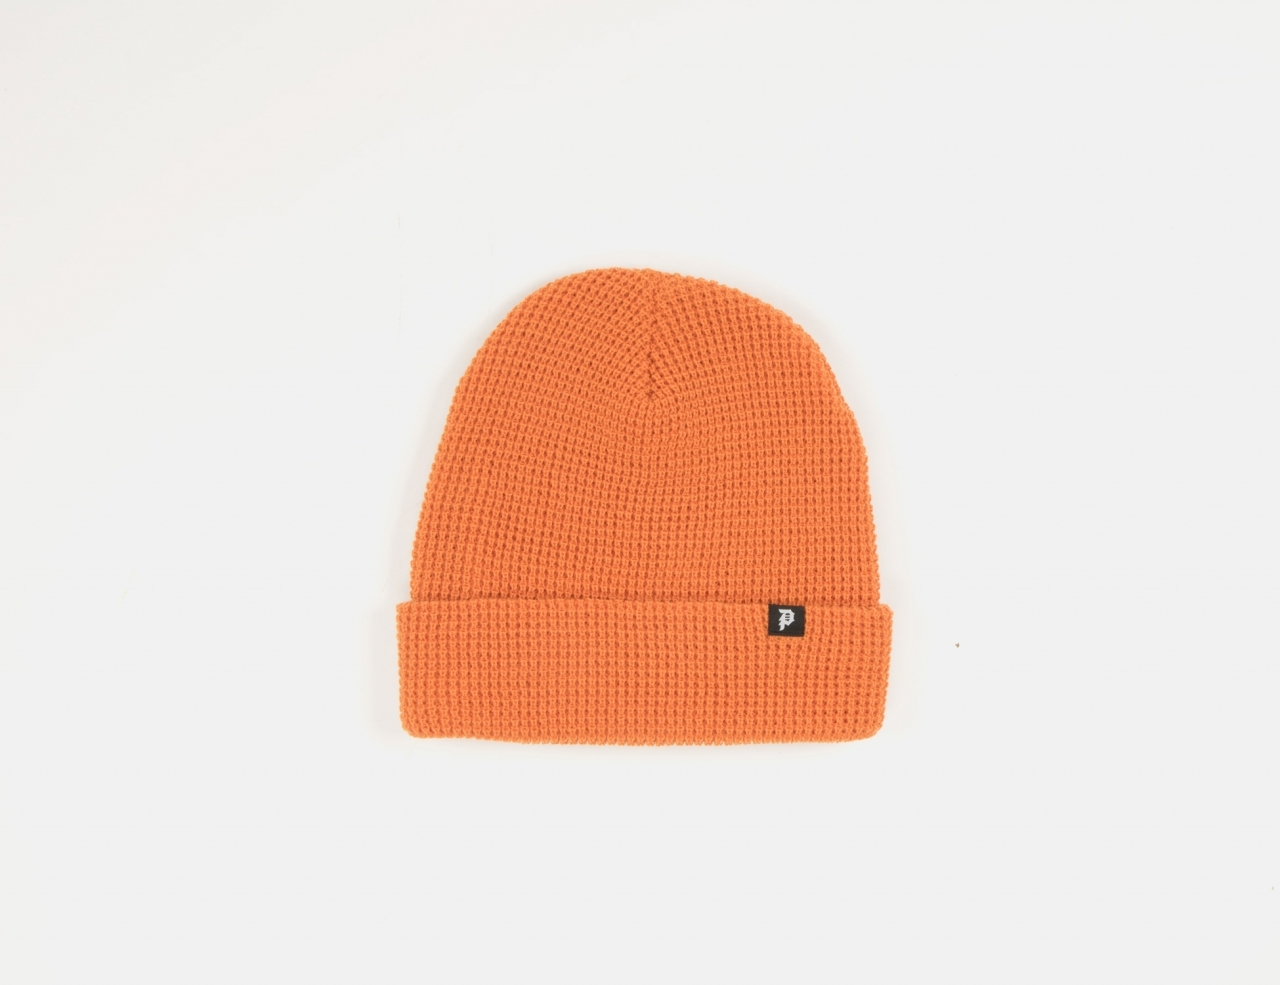 Primitive Dirty P Waffle Two-Fer Beanie - Sunset